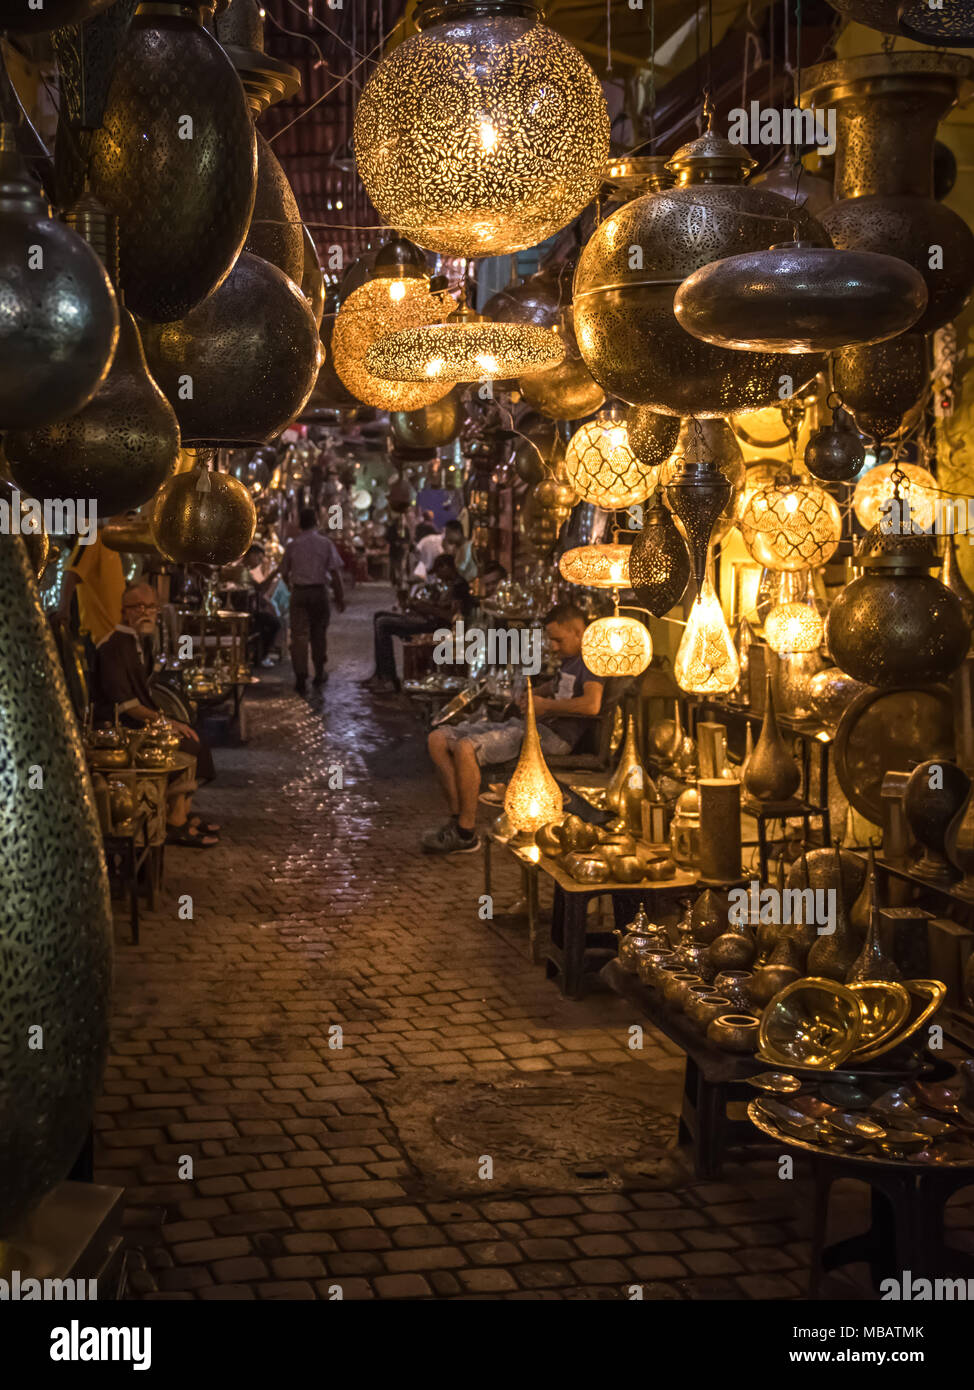 Glowing lamps fill a souk passageway in Marrakech, Morocco. The photo was taken at night when many of the lamps were lit. - Stock Image